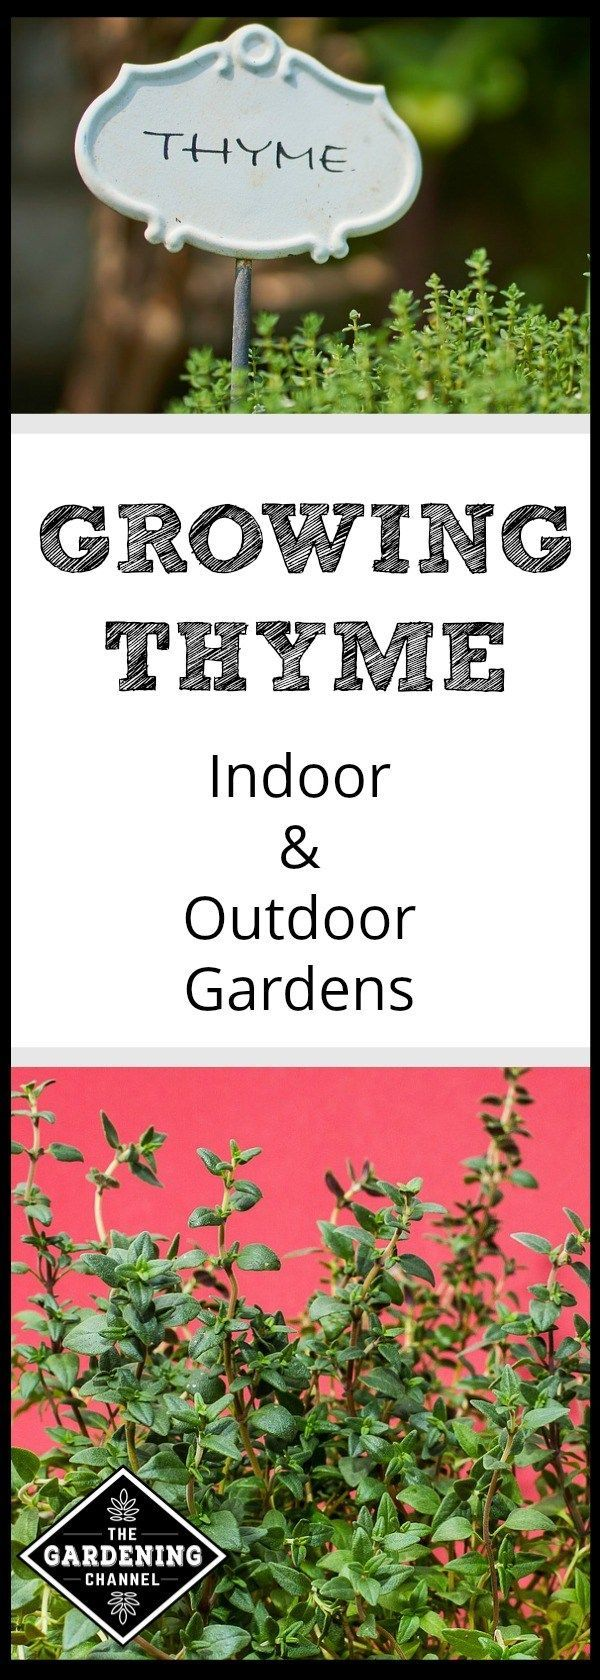 How to Grow Thyme Vegetable and Herbs Indoor vegetable